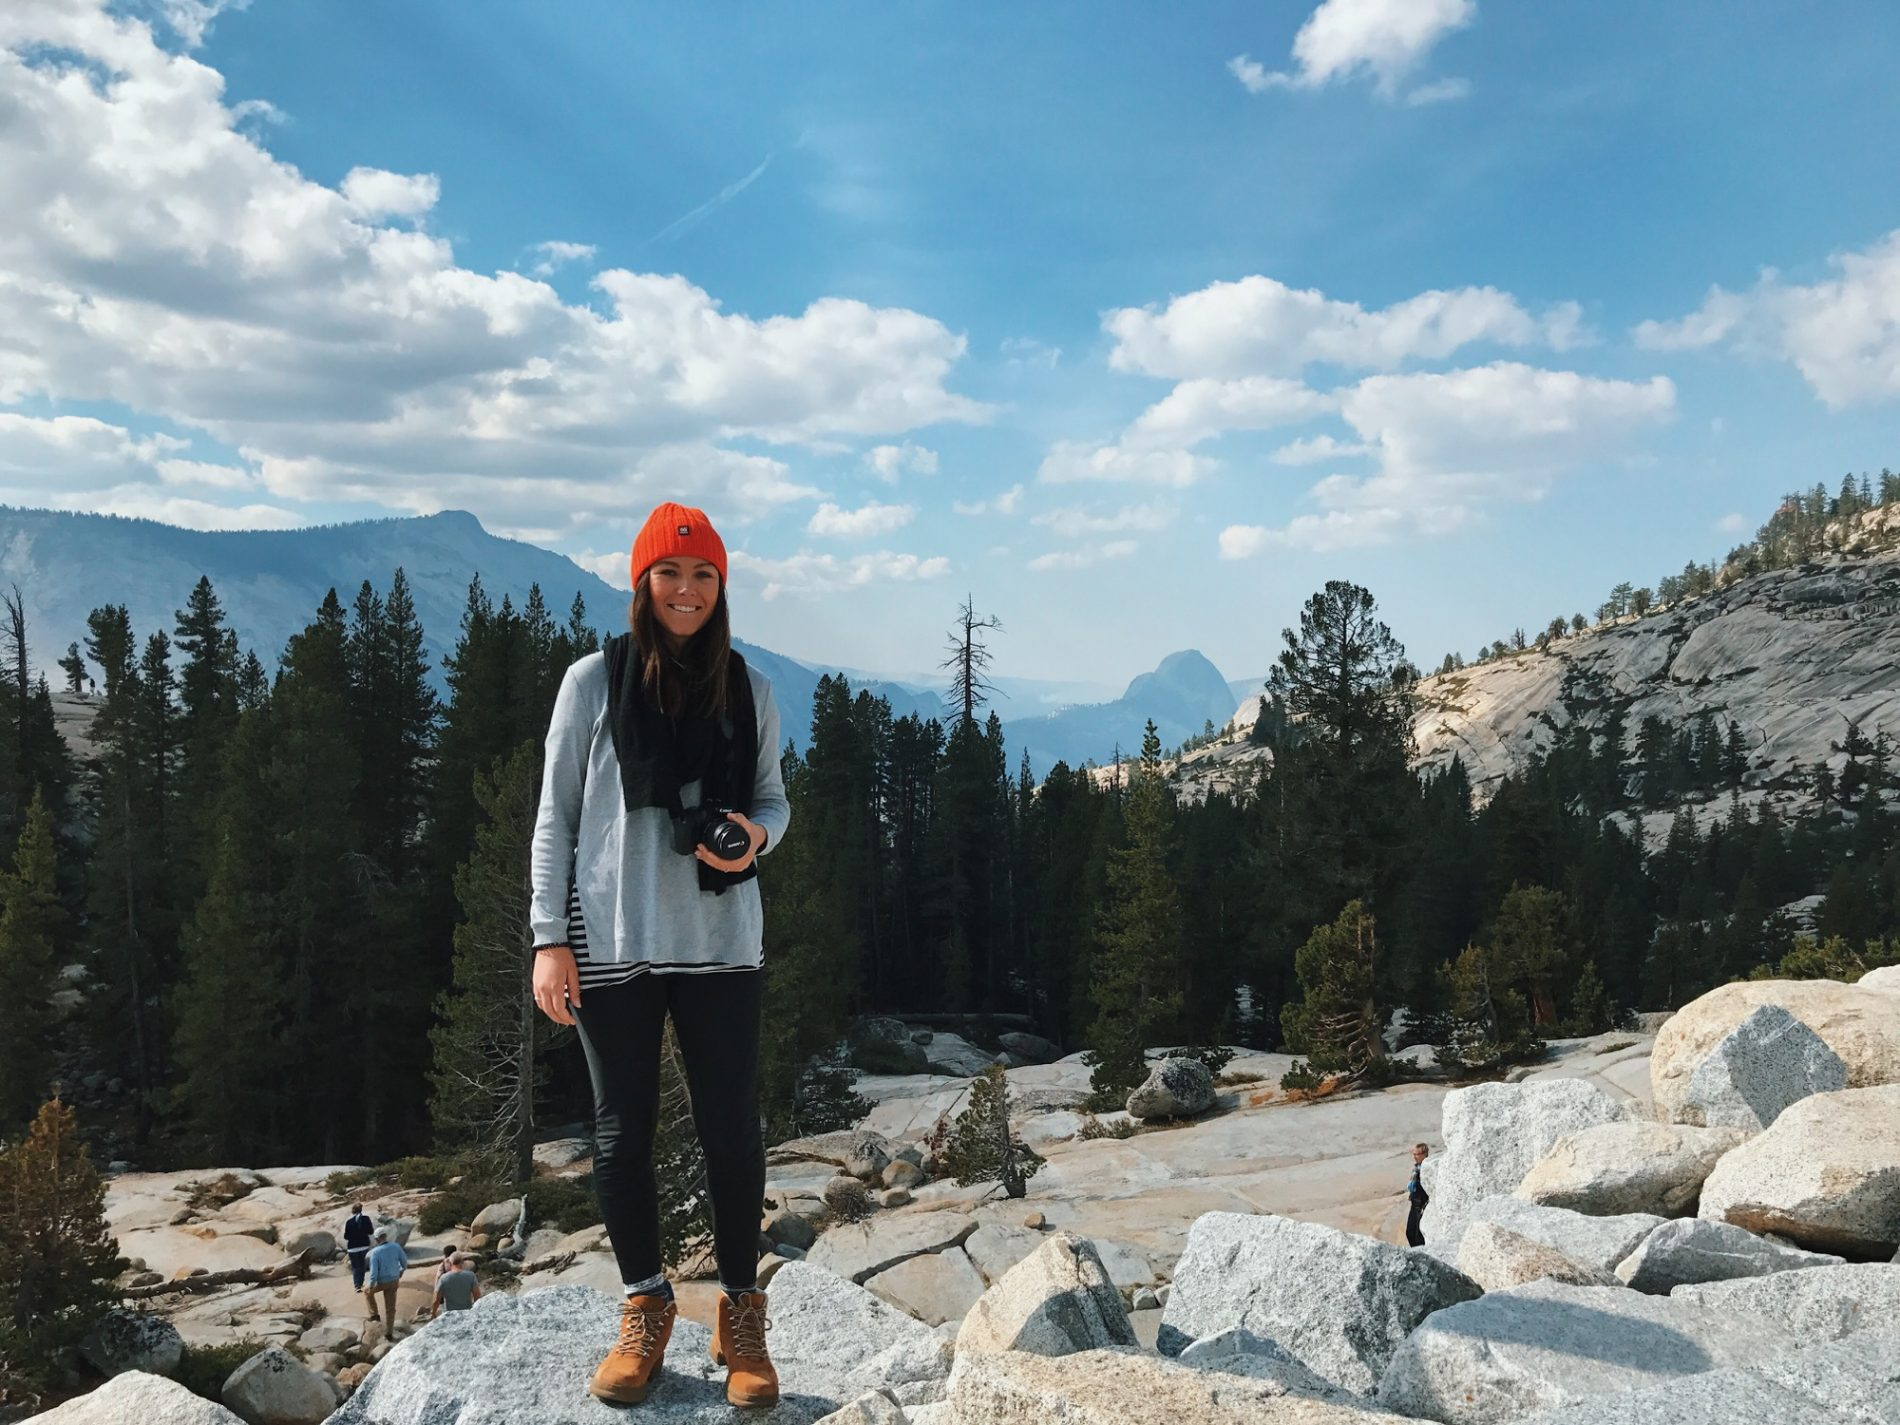 A girl stands on rock at Yosemite National Park with Half Dome in the background.